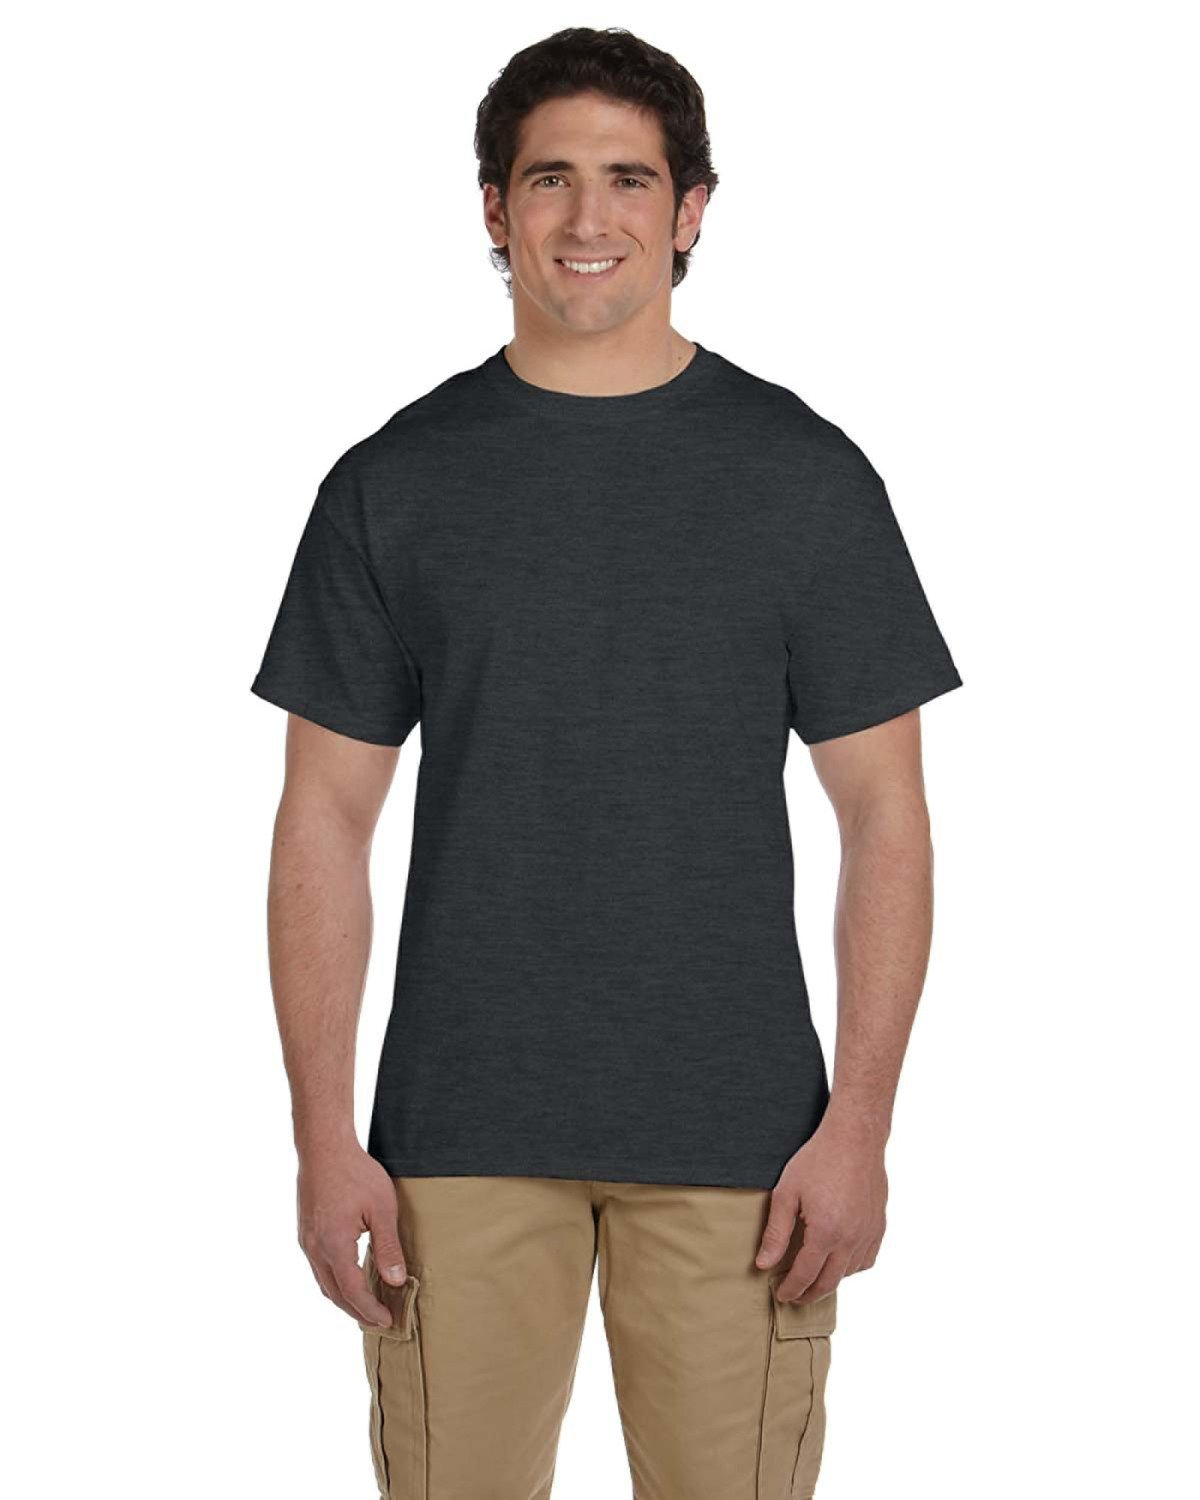 Fruit of the Loom Youth HD Cotton™ T-Shirt BLACK HEATHER